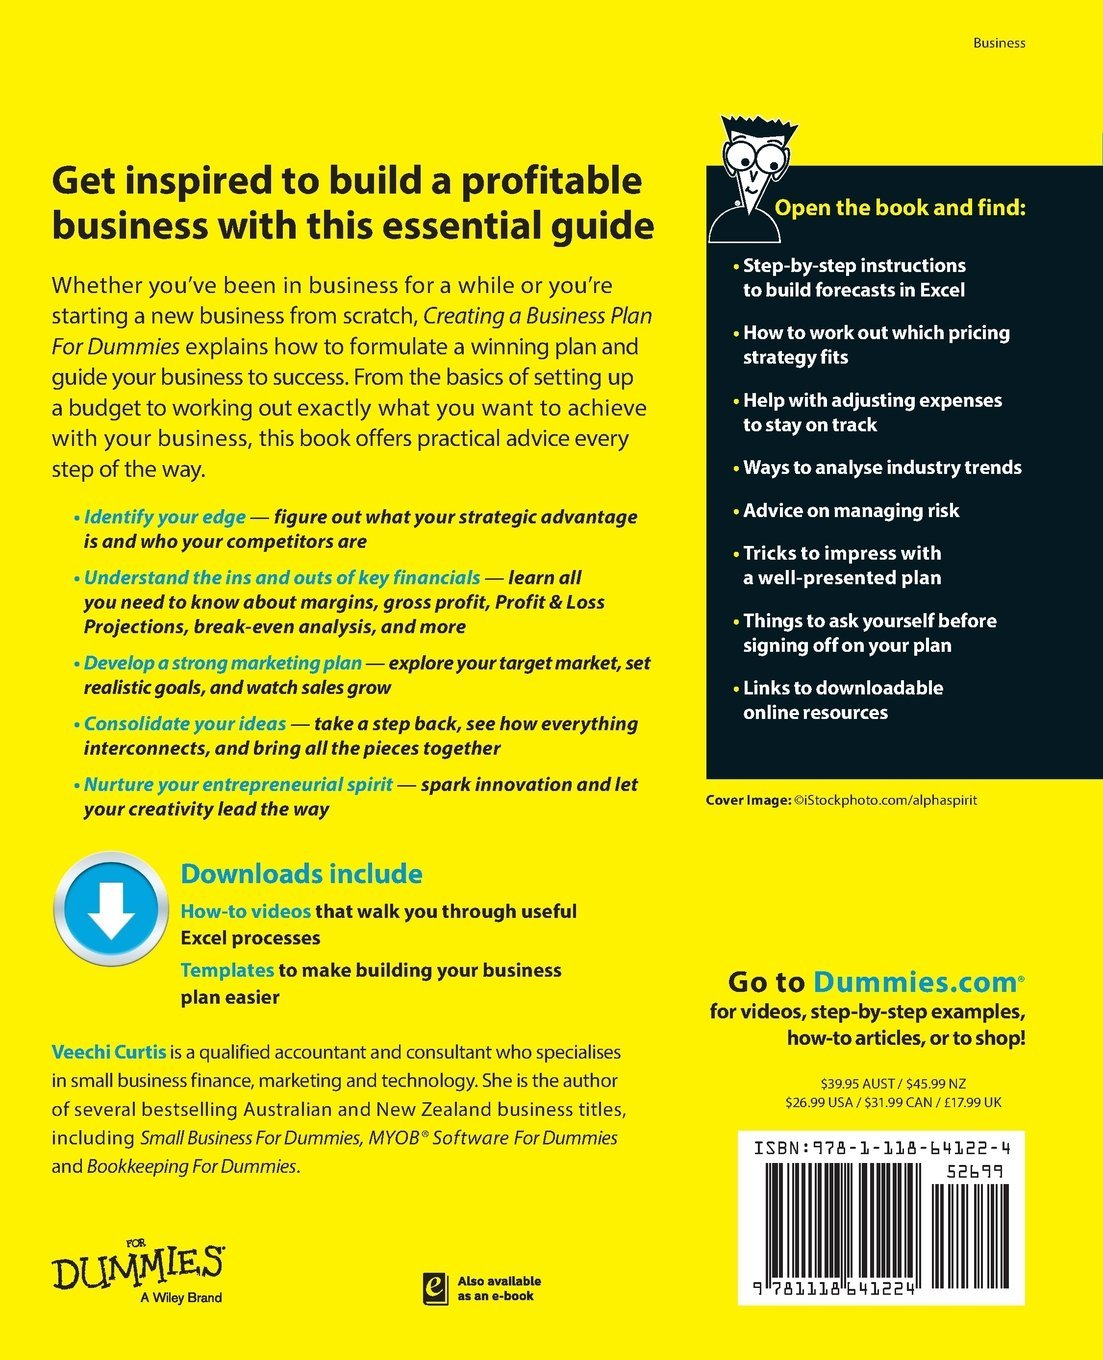 Amazon creating a business plan for dummies for dummies series amazon creating a business plan for dummies for dummies series 9781118641224 veechi curtis books flashek Images